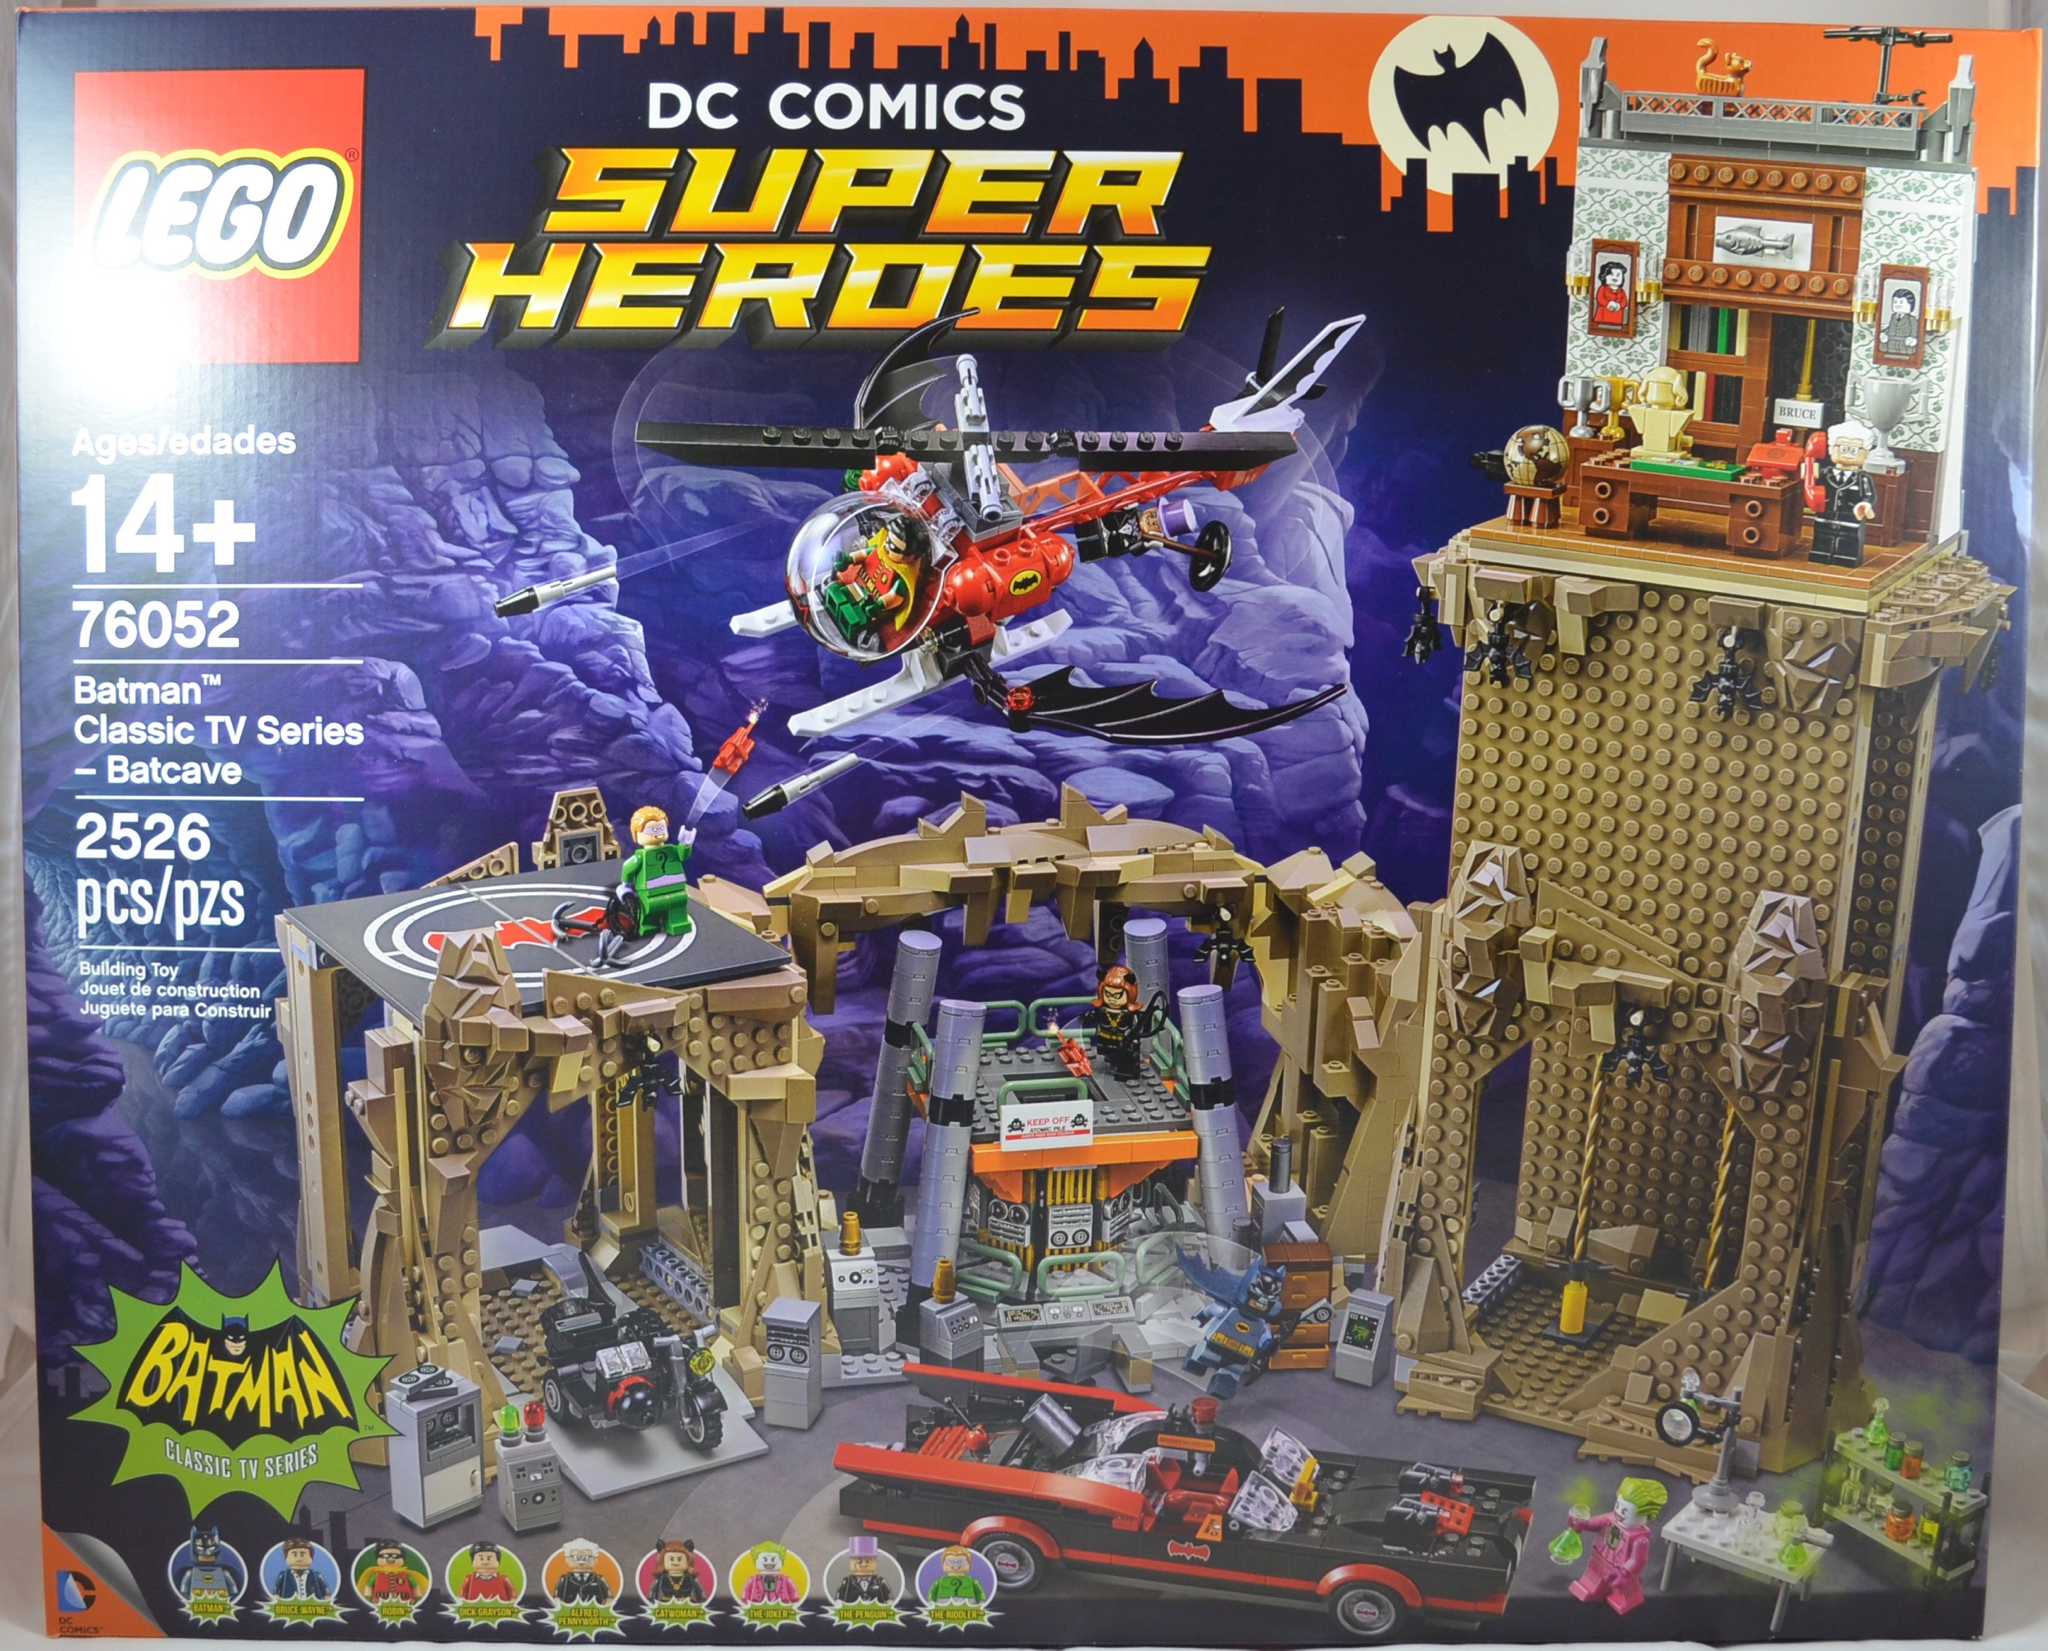 Tv Batman Classic Series Reviews Batcave 76052 ReviewLego wkTOuXZiP